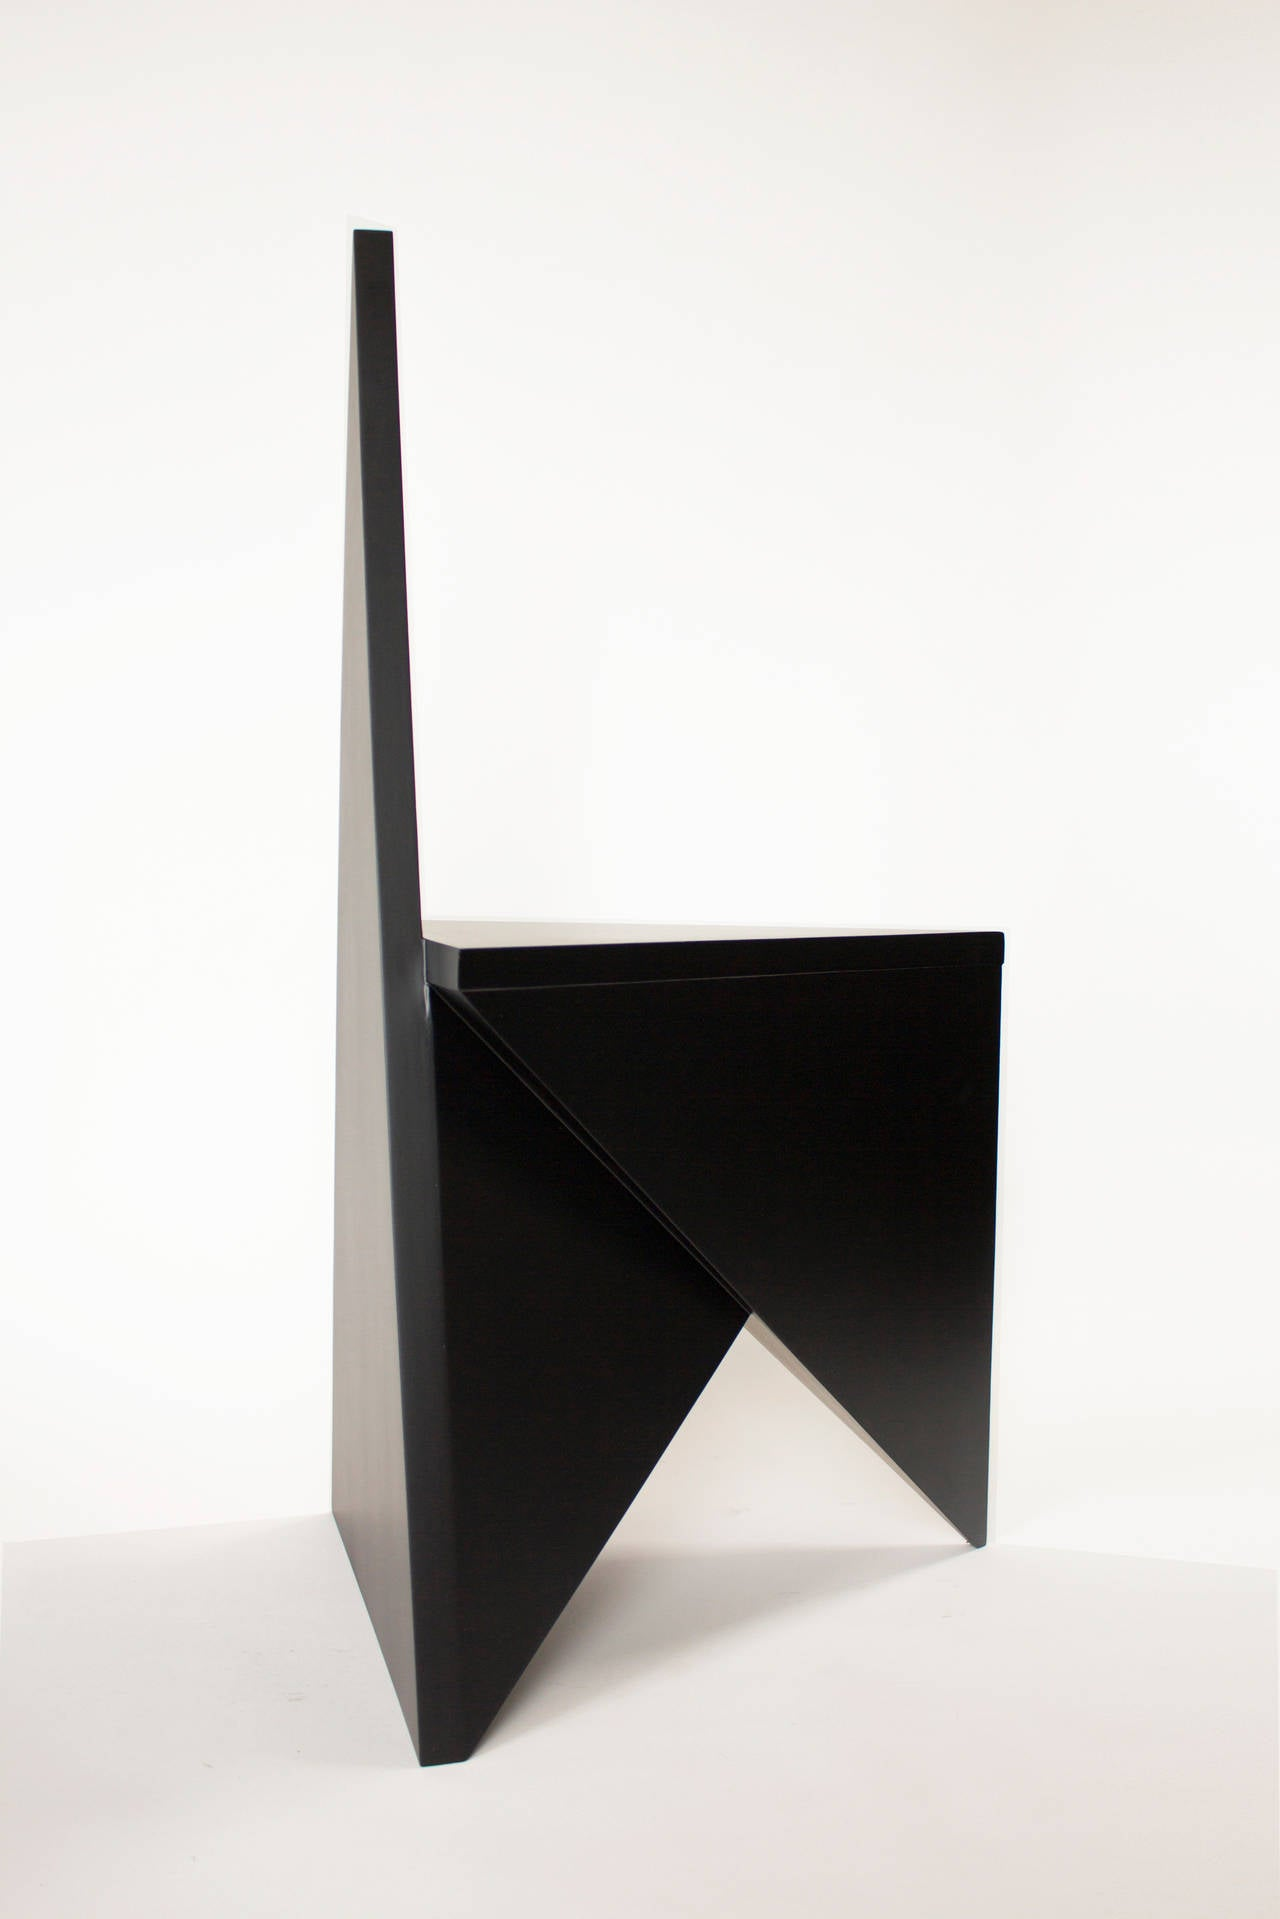 Wood Contemporary 'Vanishing Twin' Side Chair by Material Lust, 2015